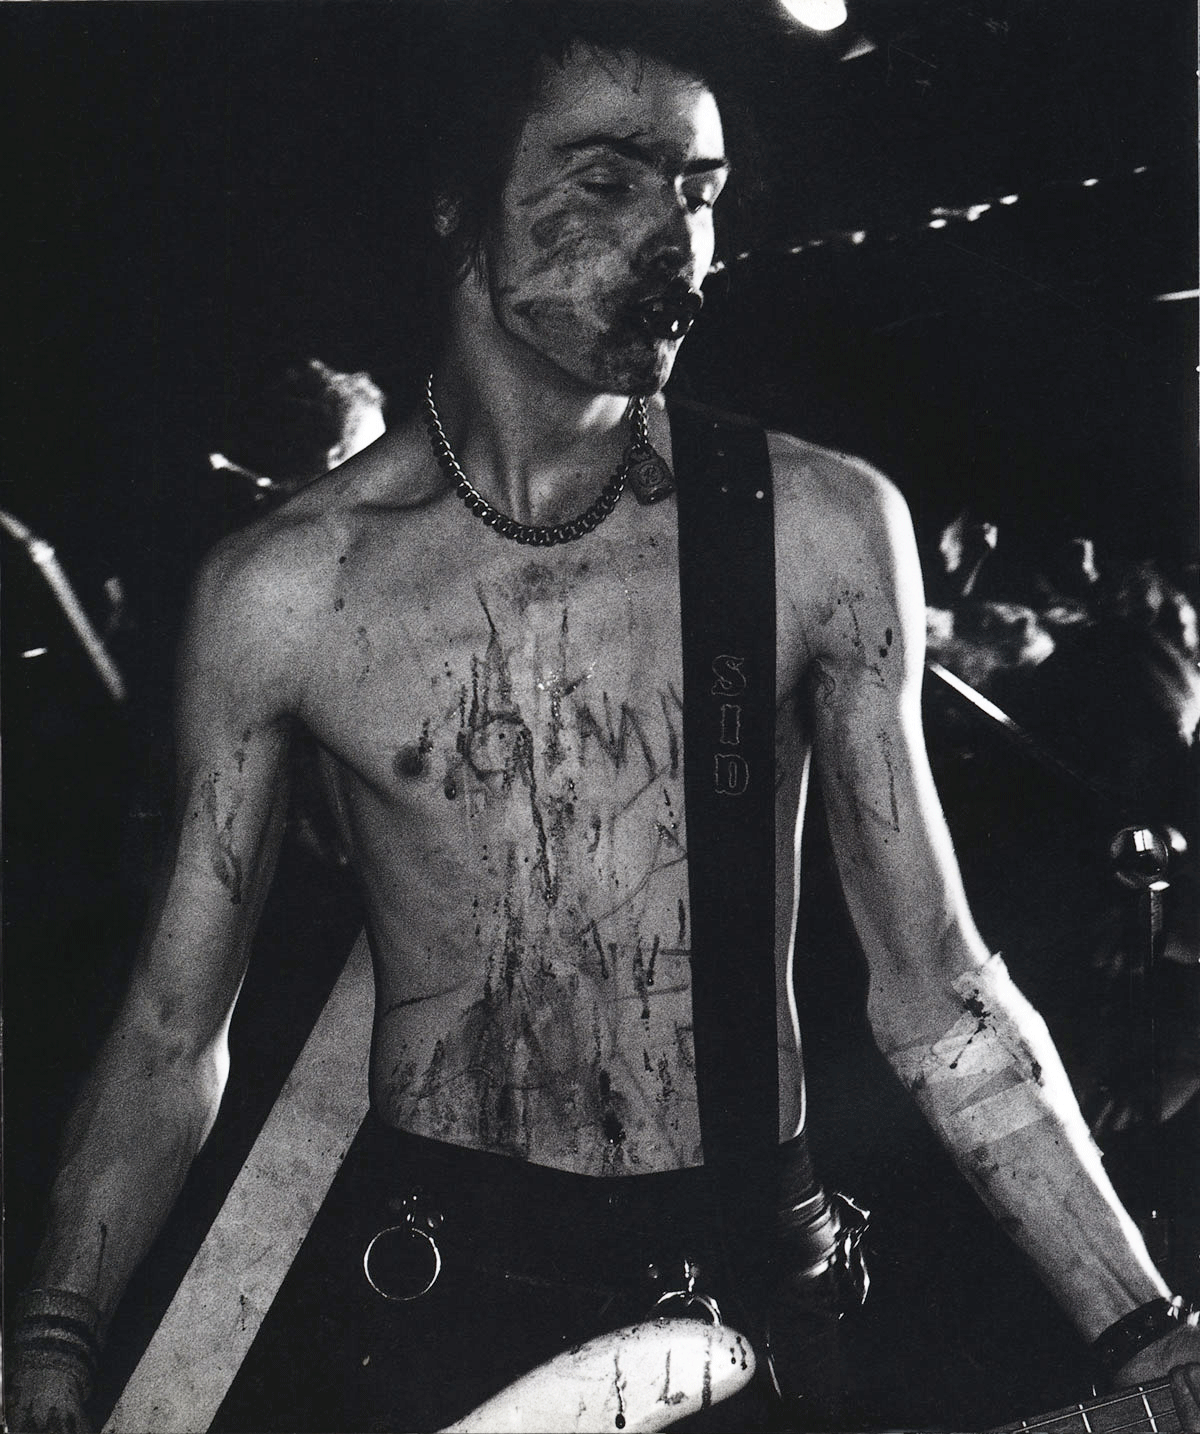 Sid Vicious on stage